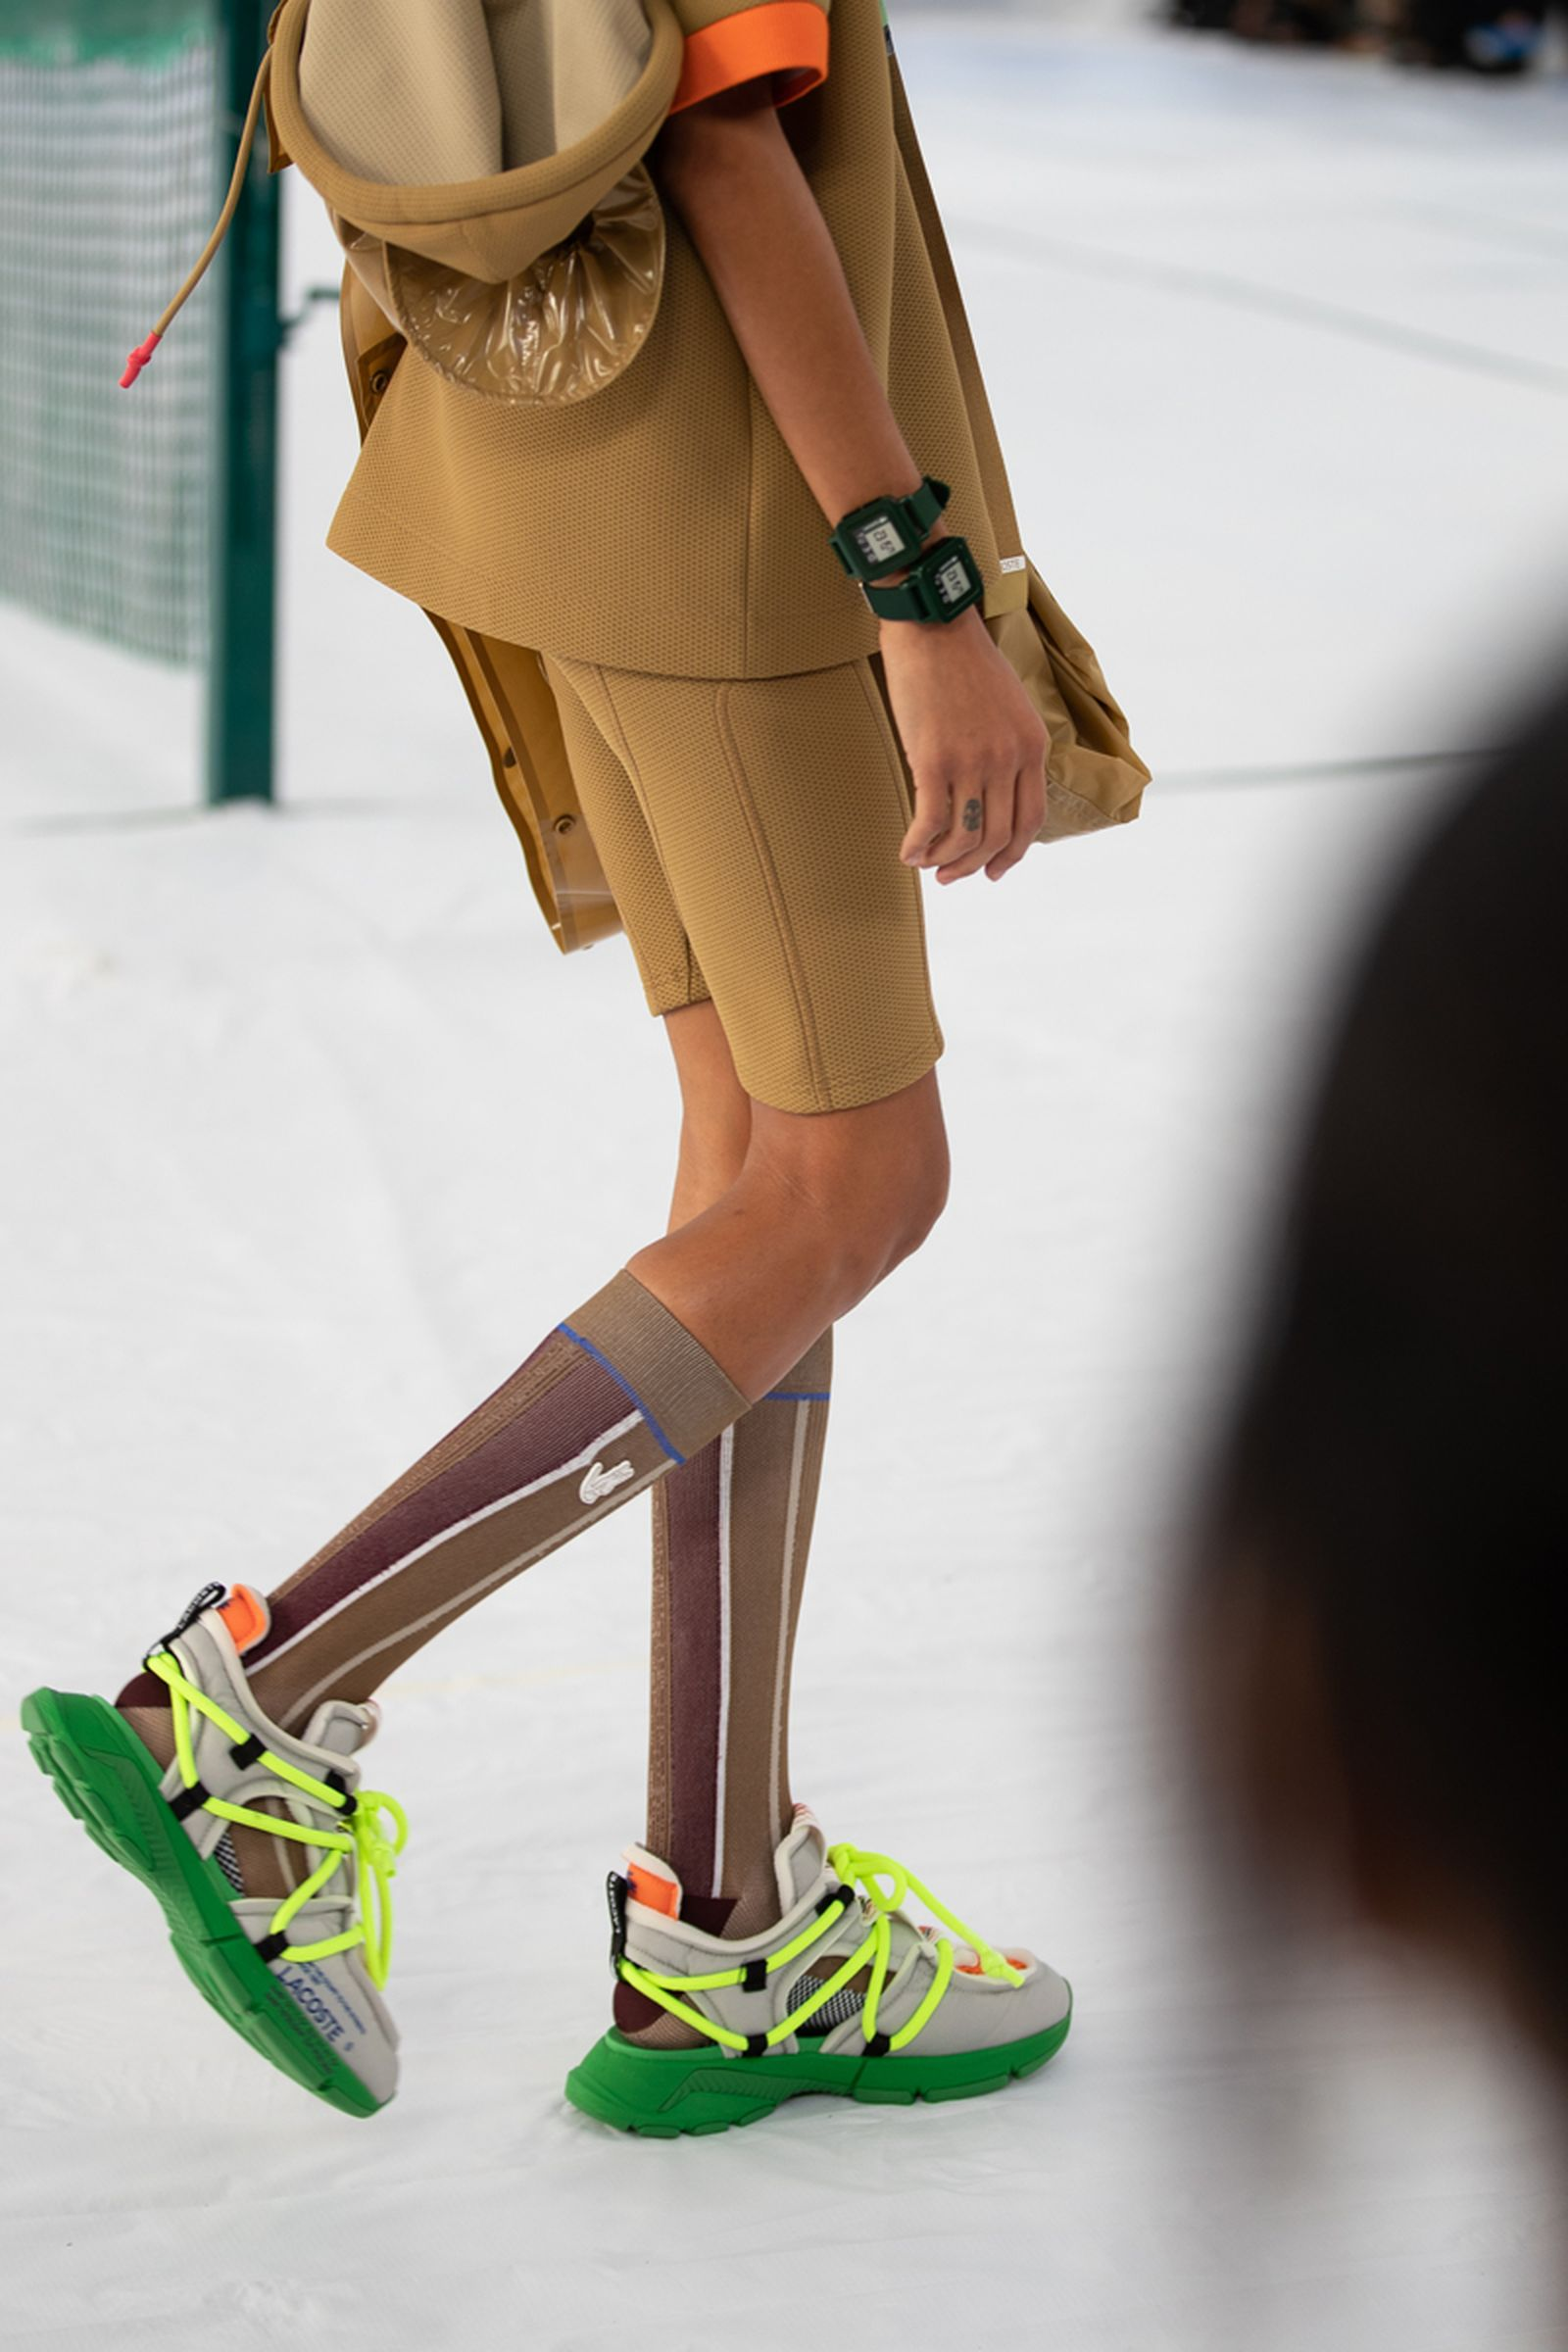 lacoste-spring-summer-2022-collection (17)